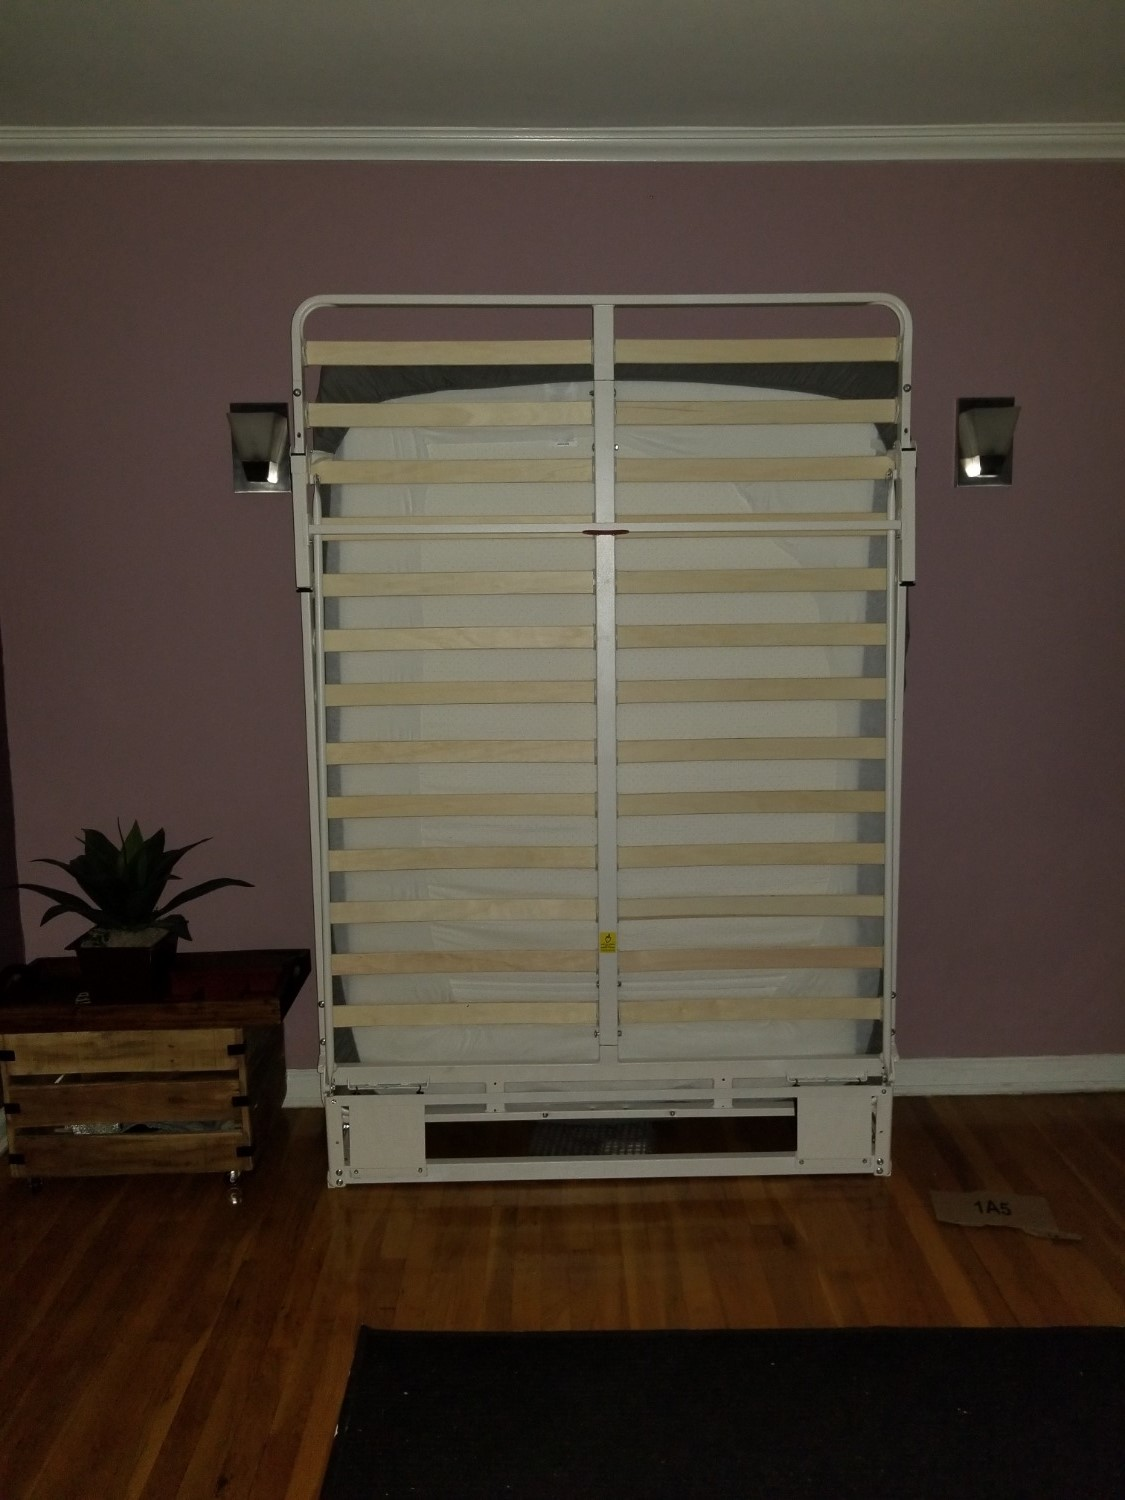 Next Bed Free Shipping Wall Bed Mechanism Kit Murphy